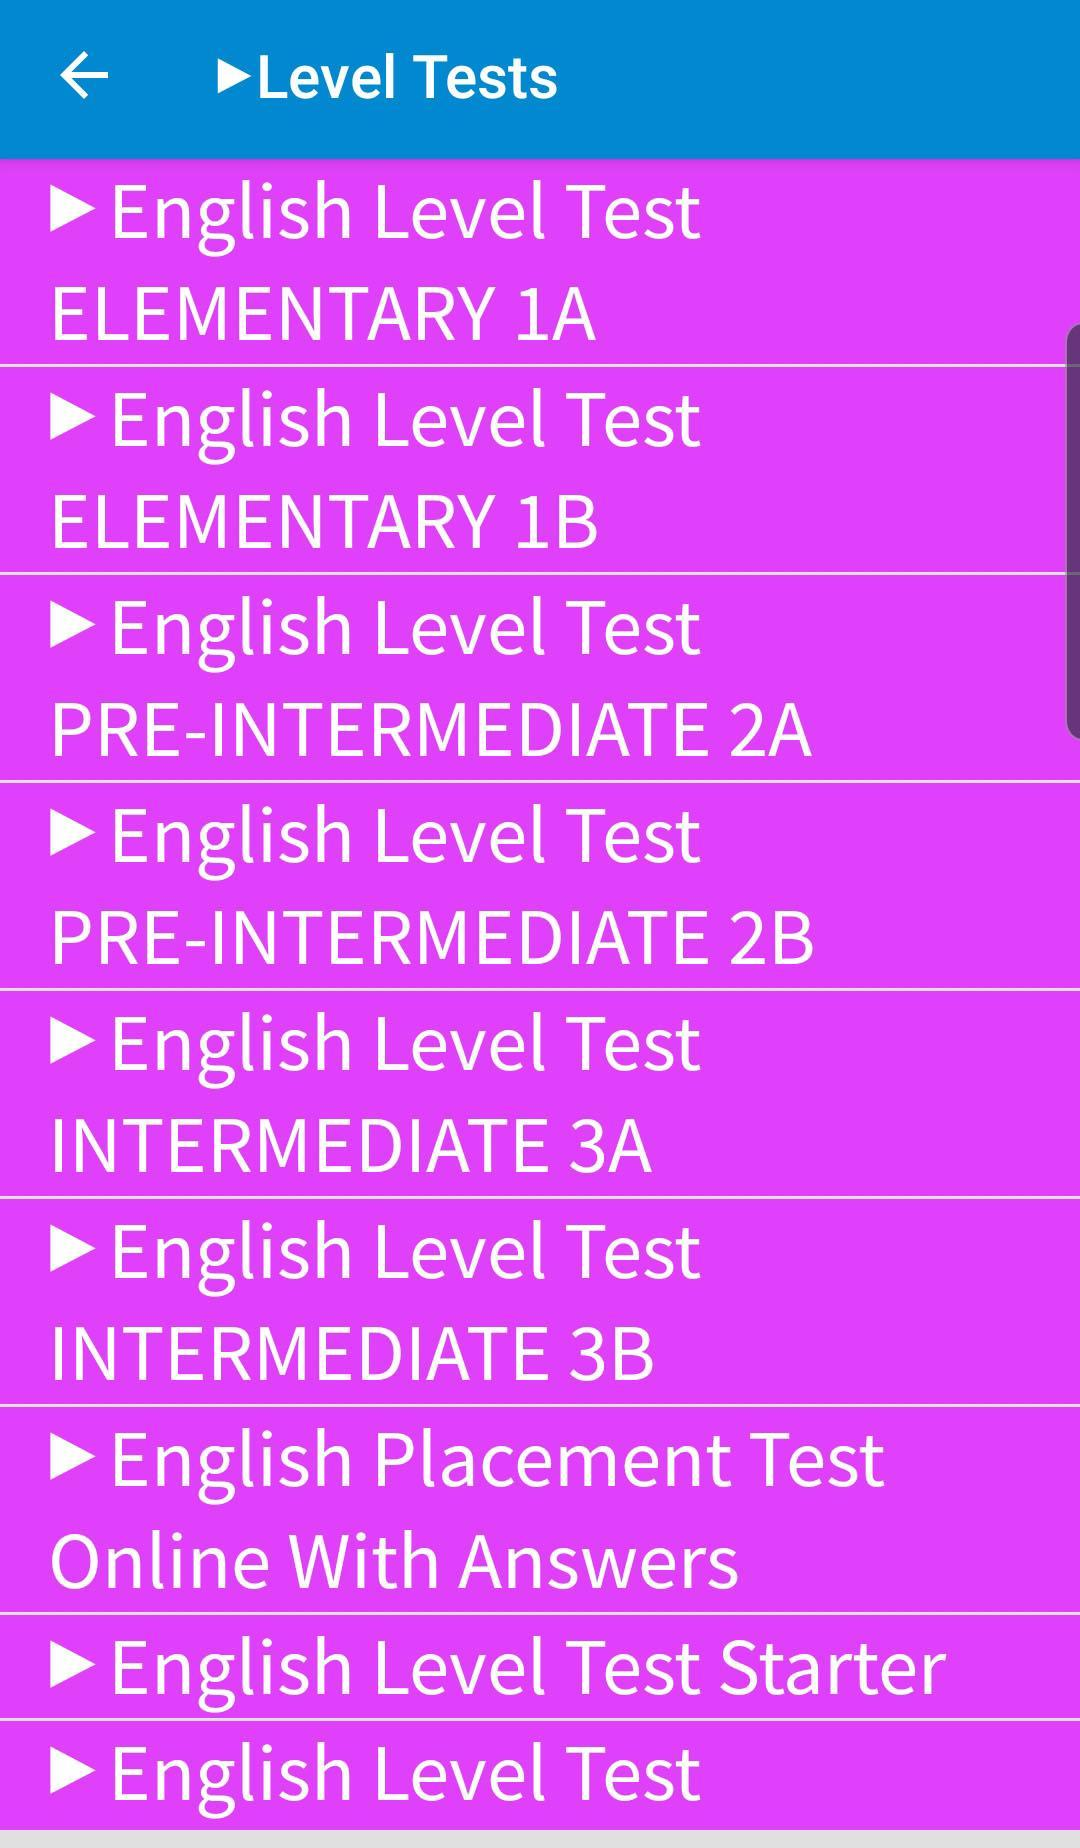 English Level Tests A1 to C2 for Android - APK Download